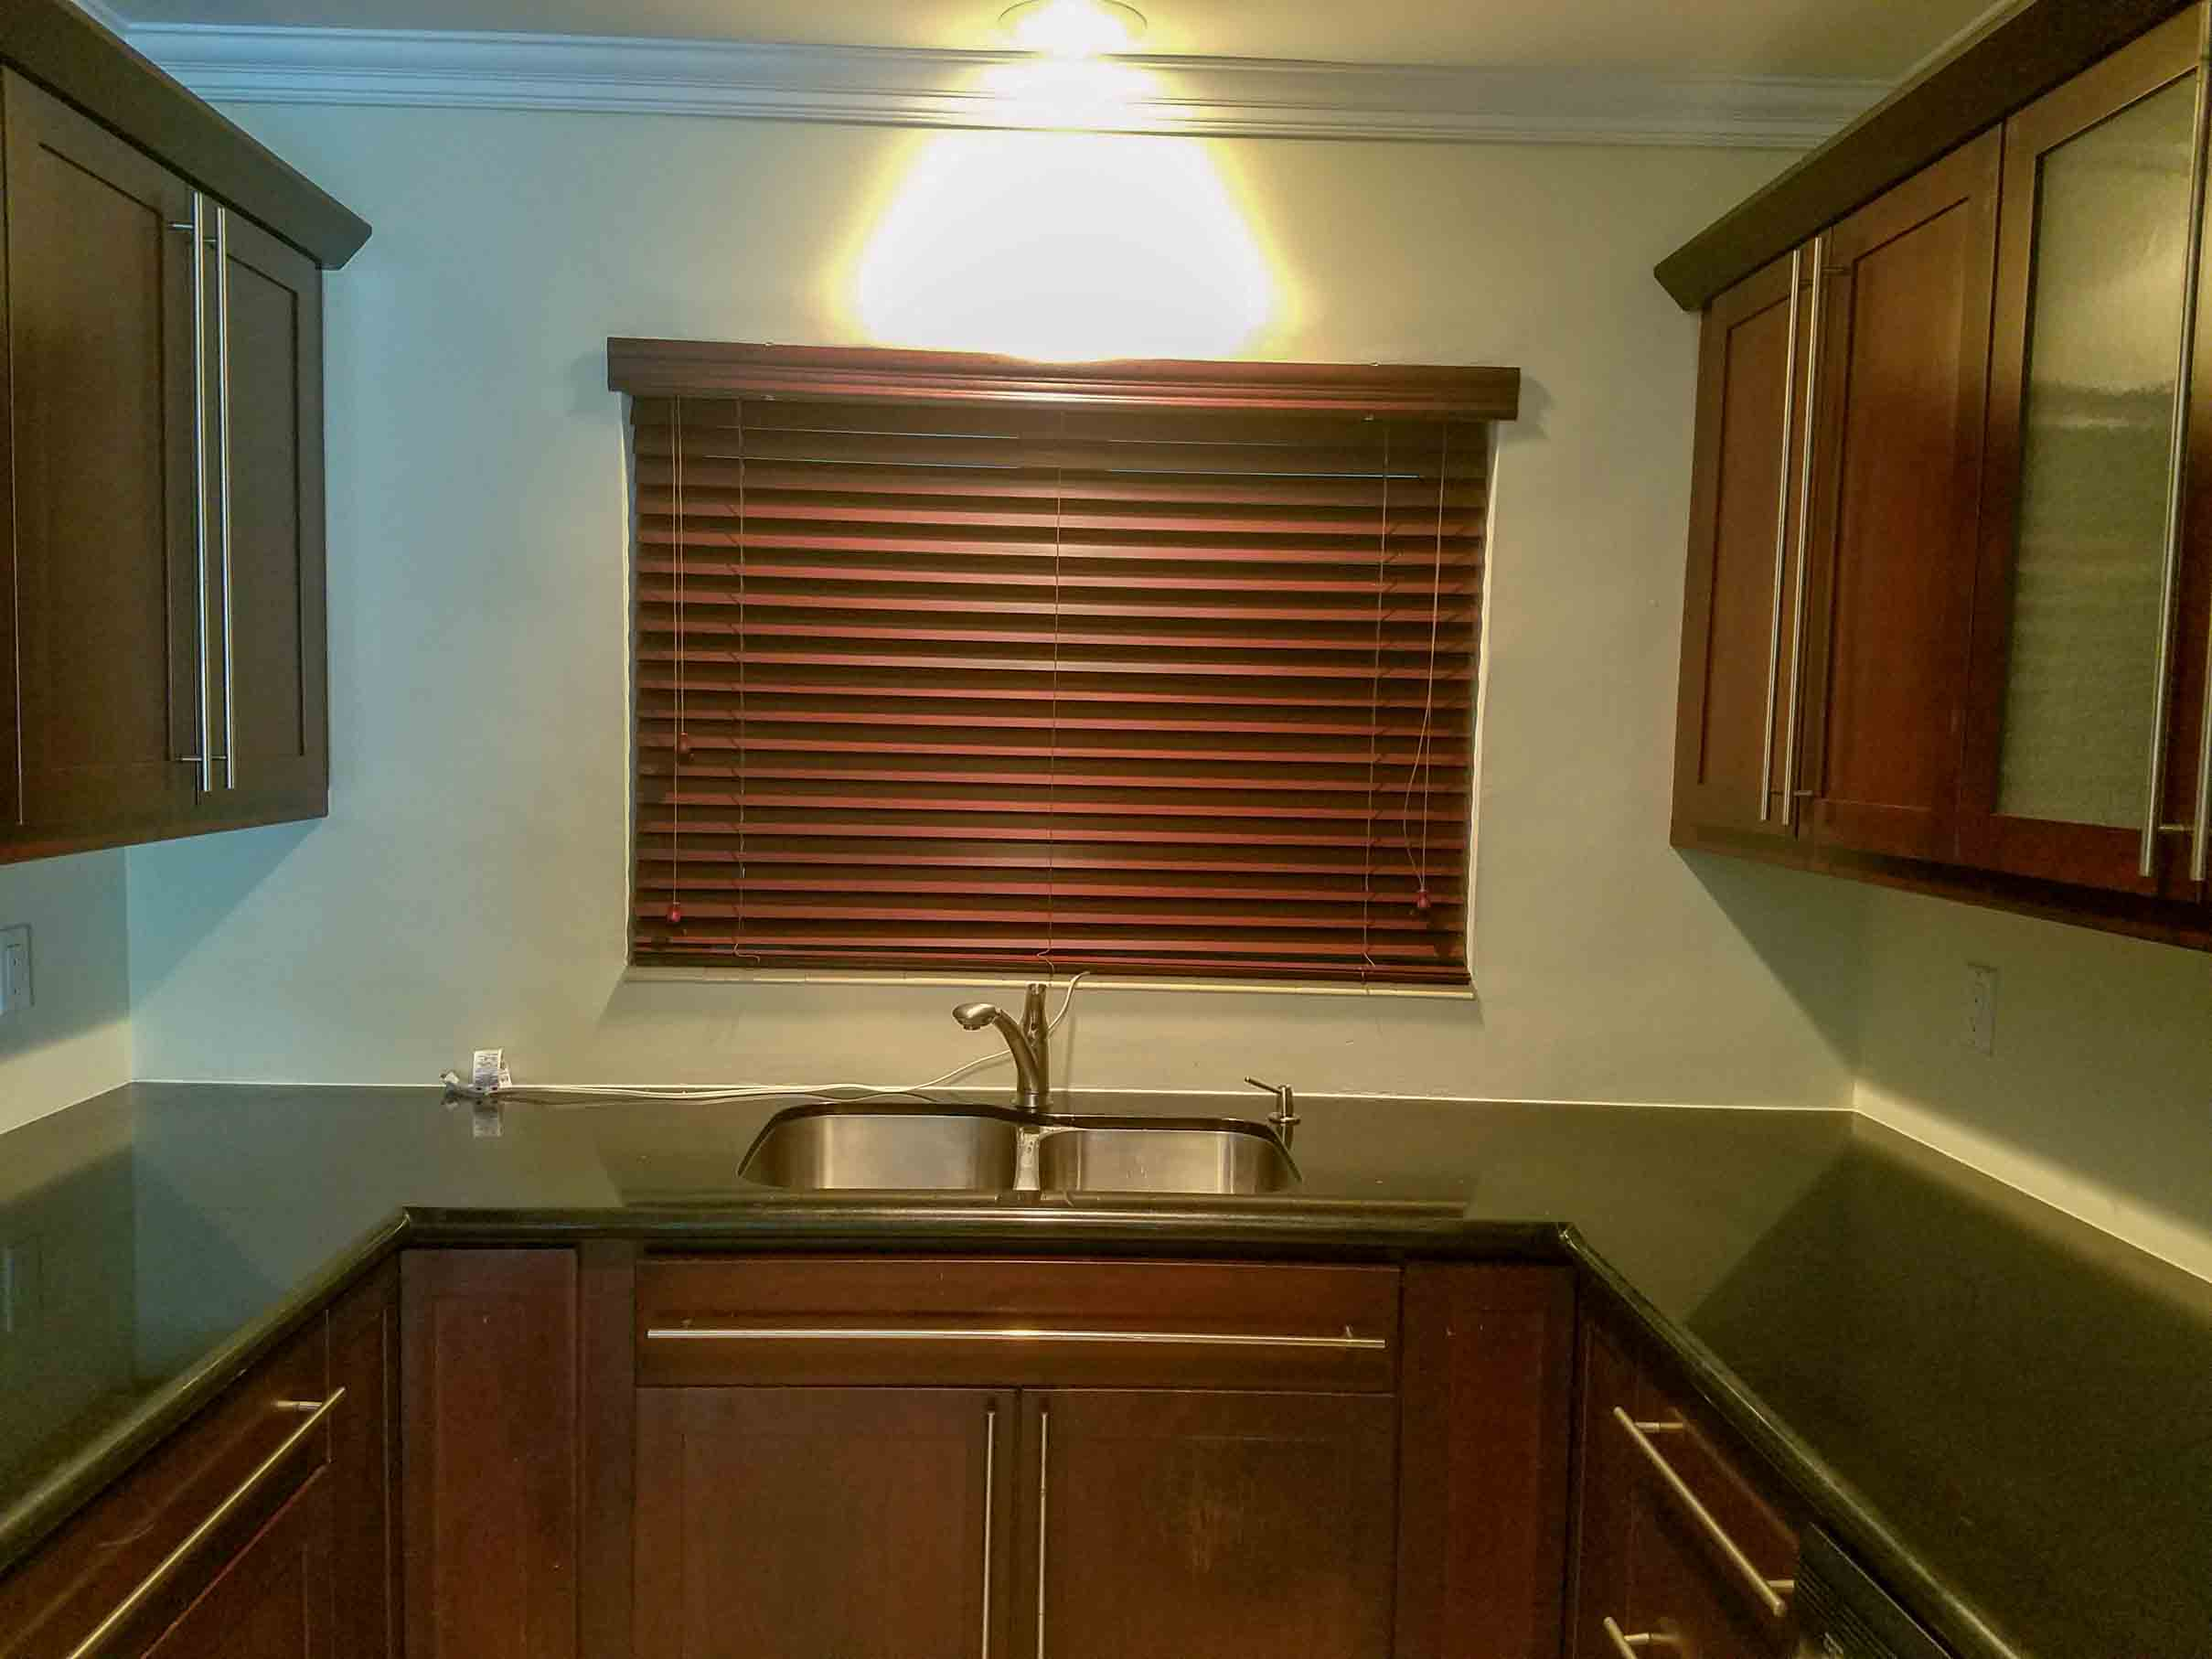 wood blinds gallery WOOD BLINDS GALLERY 20171117 134139